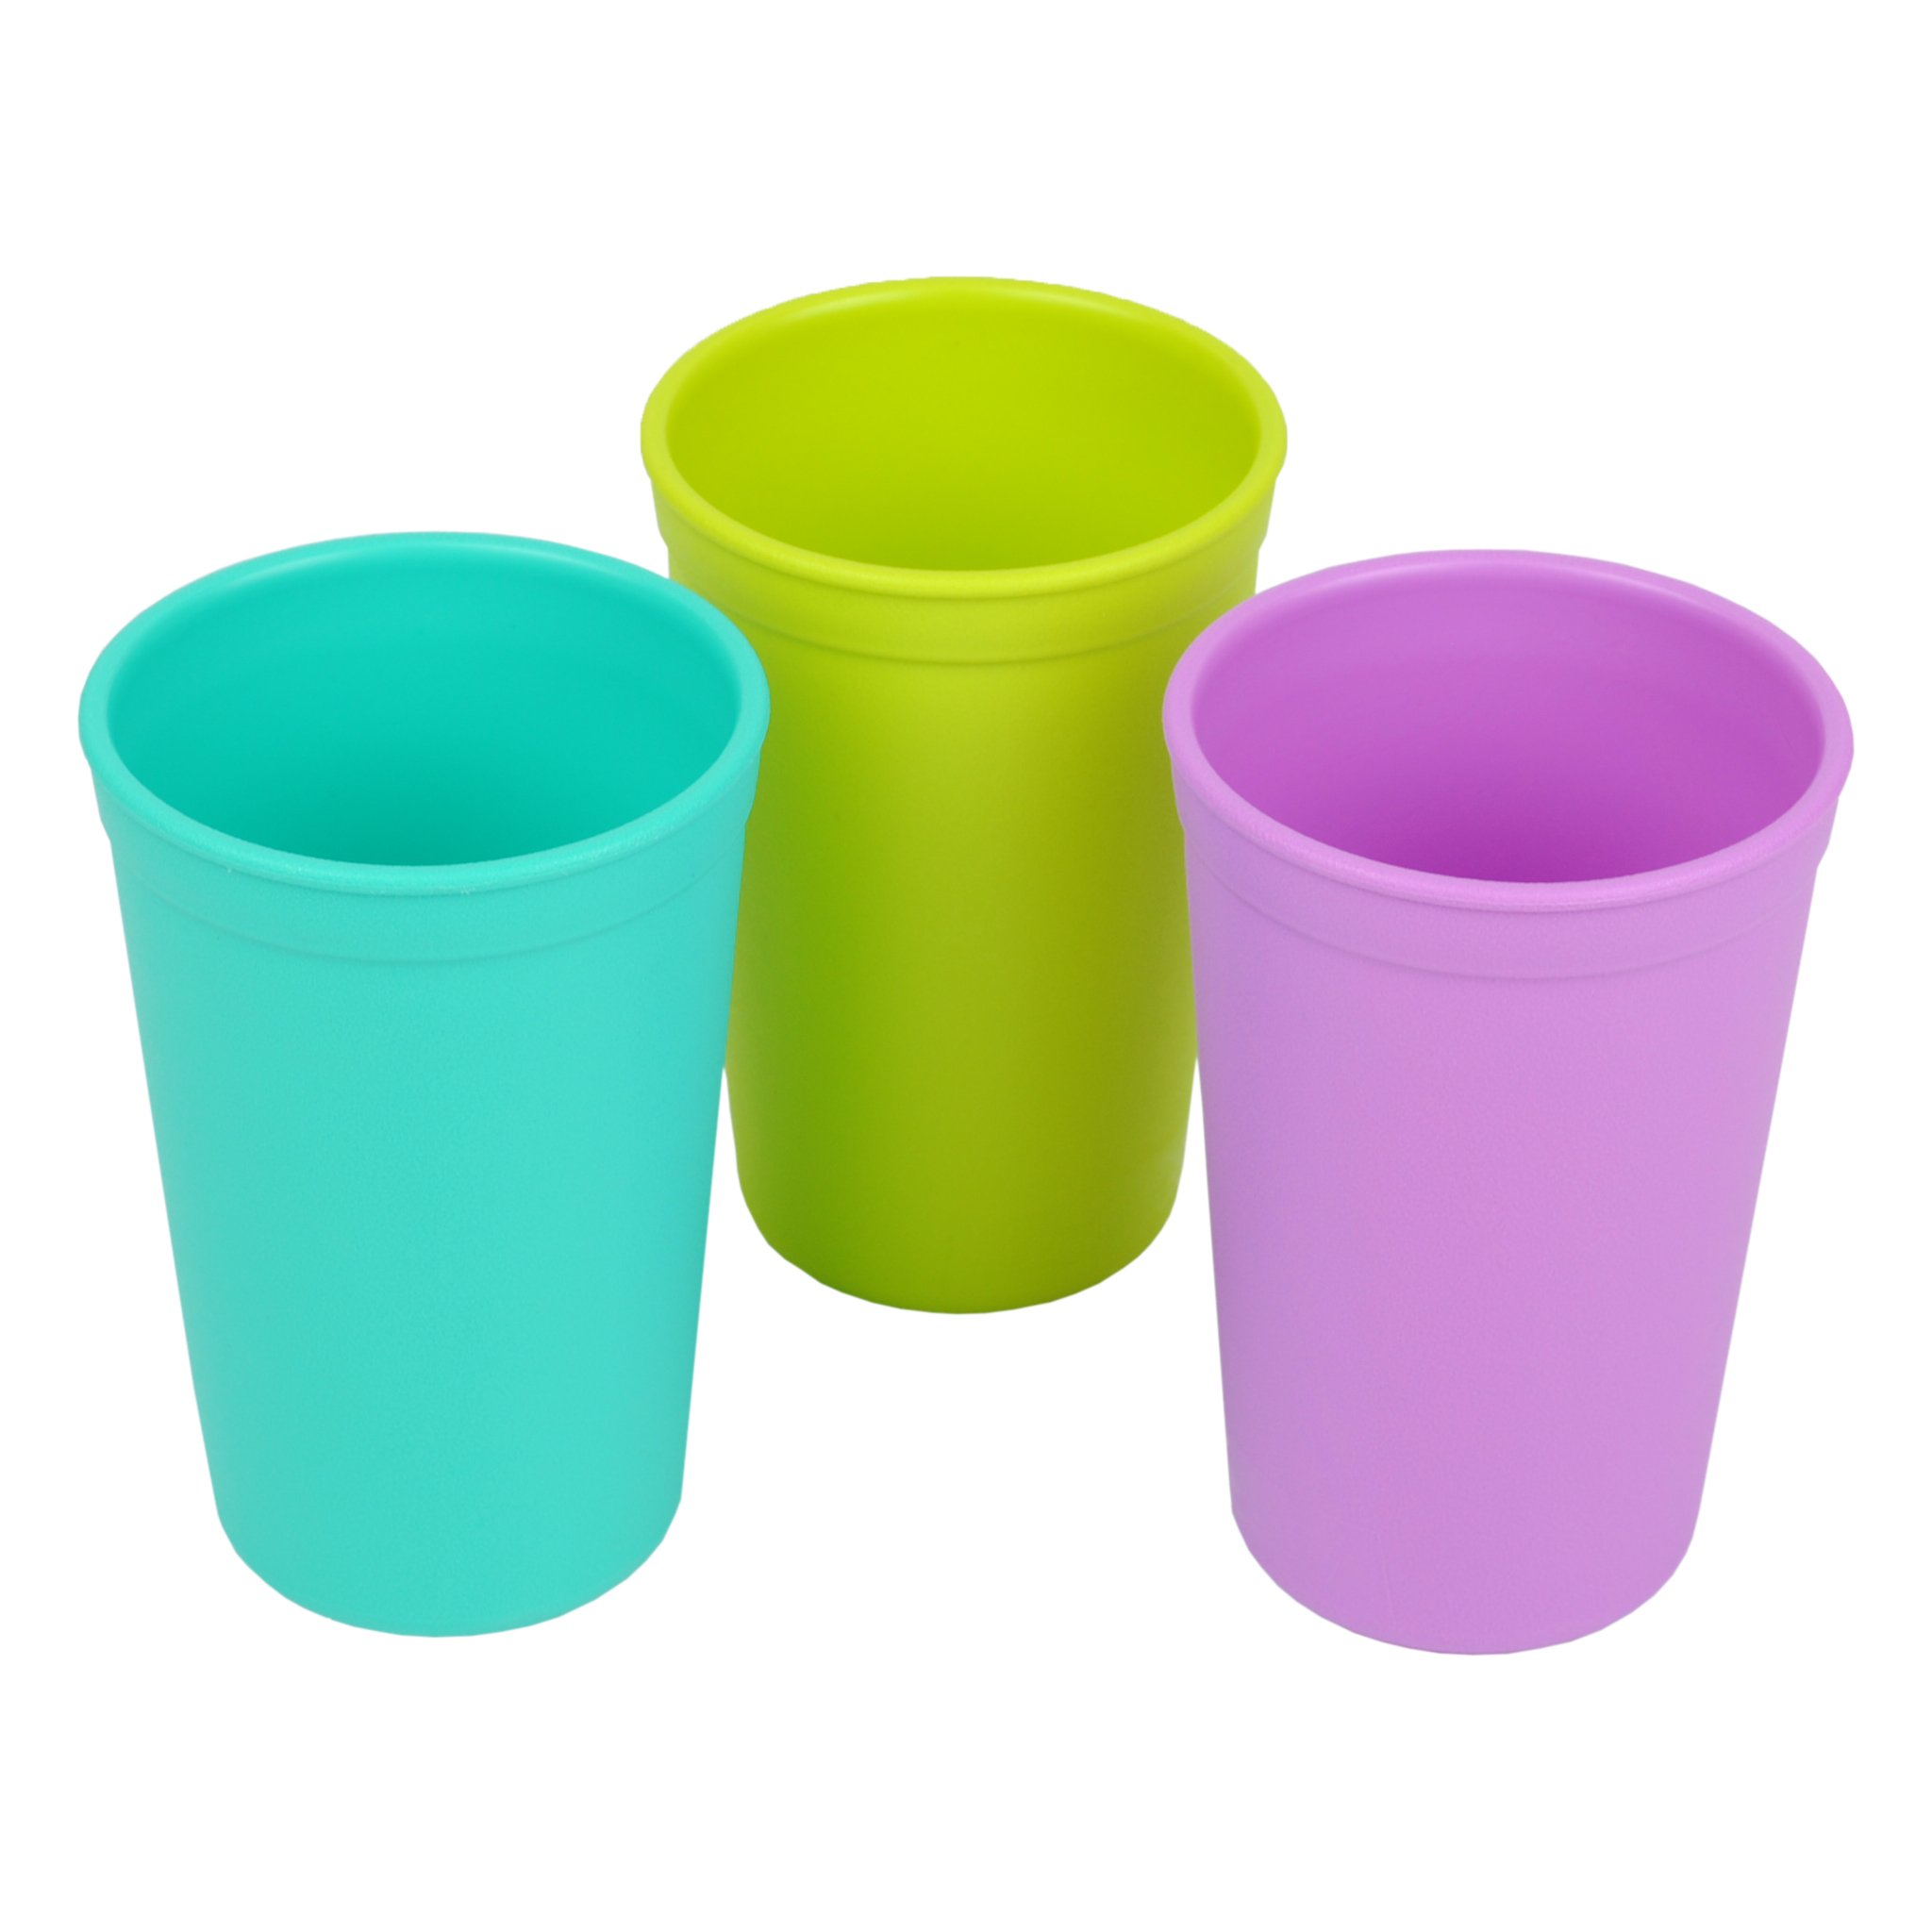 Re-Play 3pk - 9oz. Drinking Cups | Made in USA from Eco Friendly Heavyweight Recycled Milk Jugs - Virtually Indestructible | for All Ages | Aqua, Lime Green, Purple | Mermaid